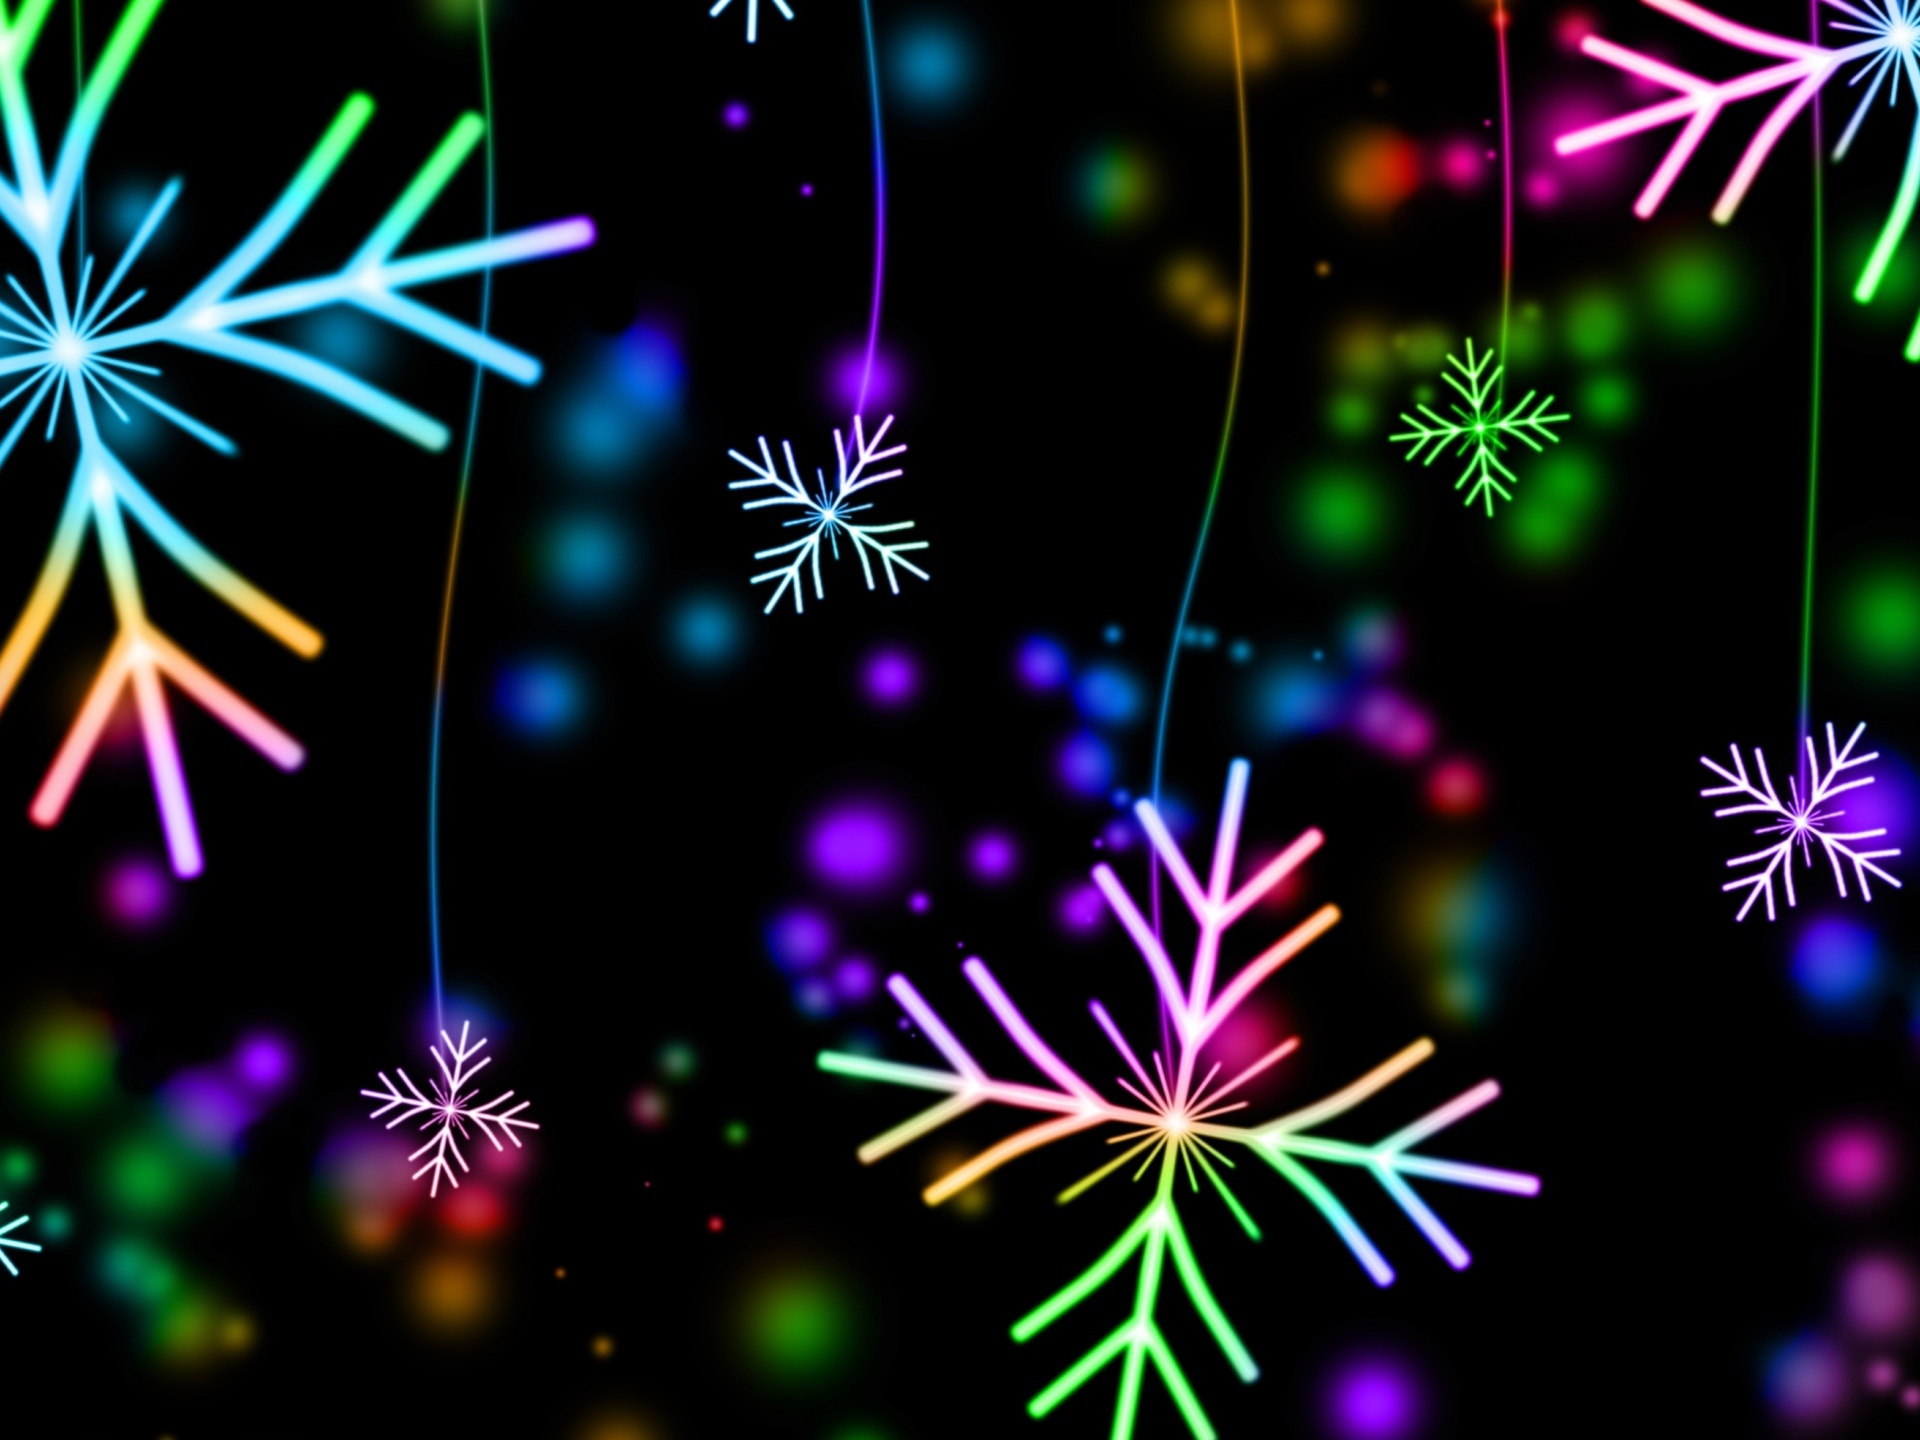 1920x1440 snowflakes, colorful, glare